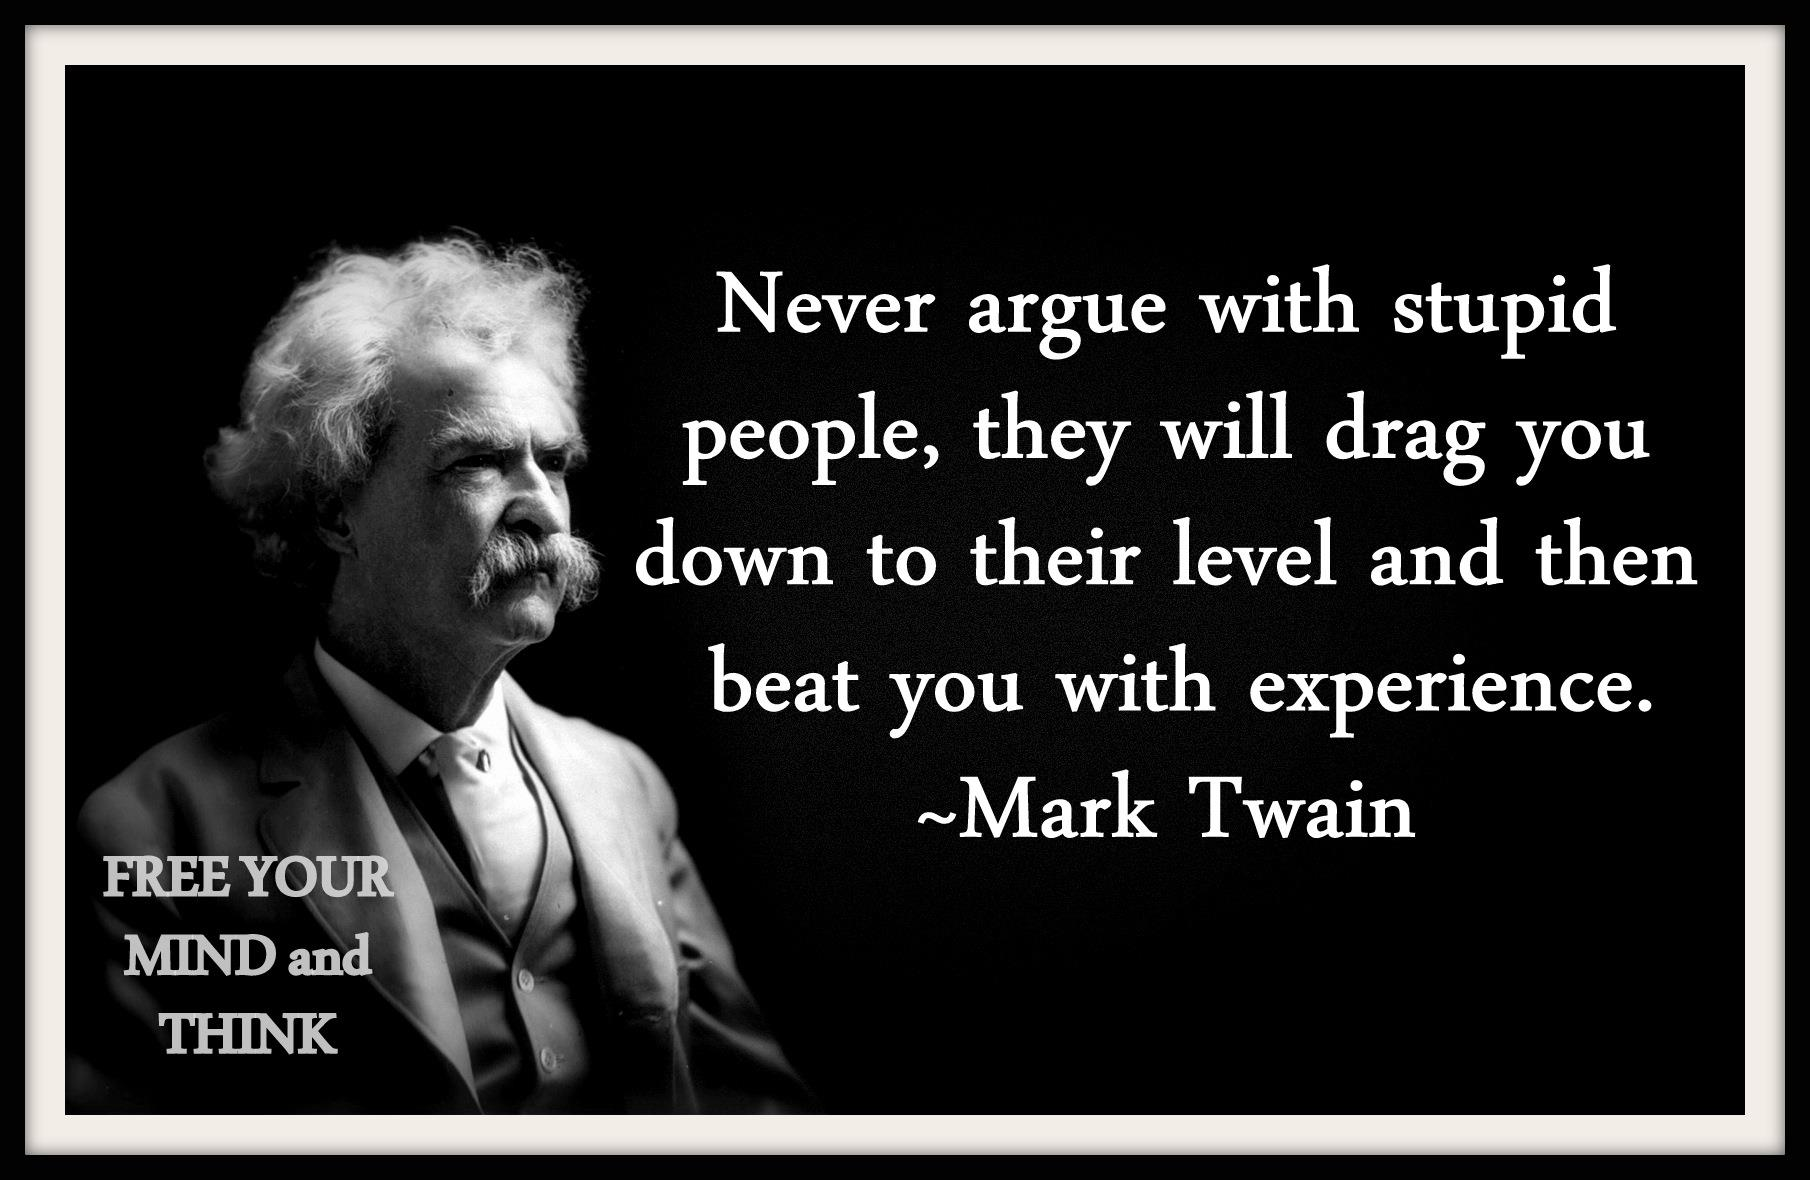 Quotes For Stupid People: 1000+ Images About Quotes / Rude People On Pinterest